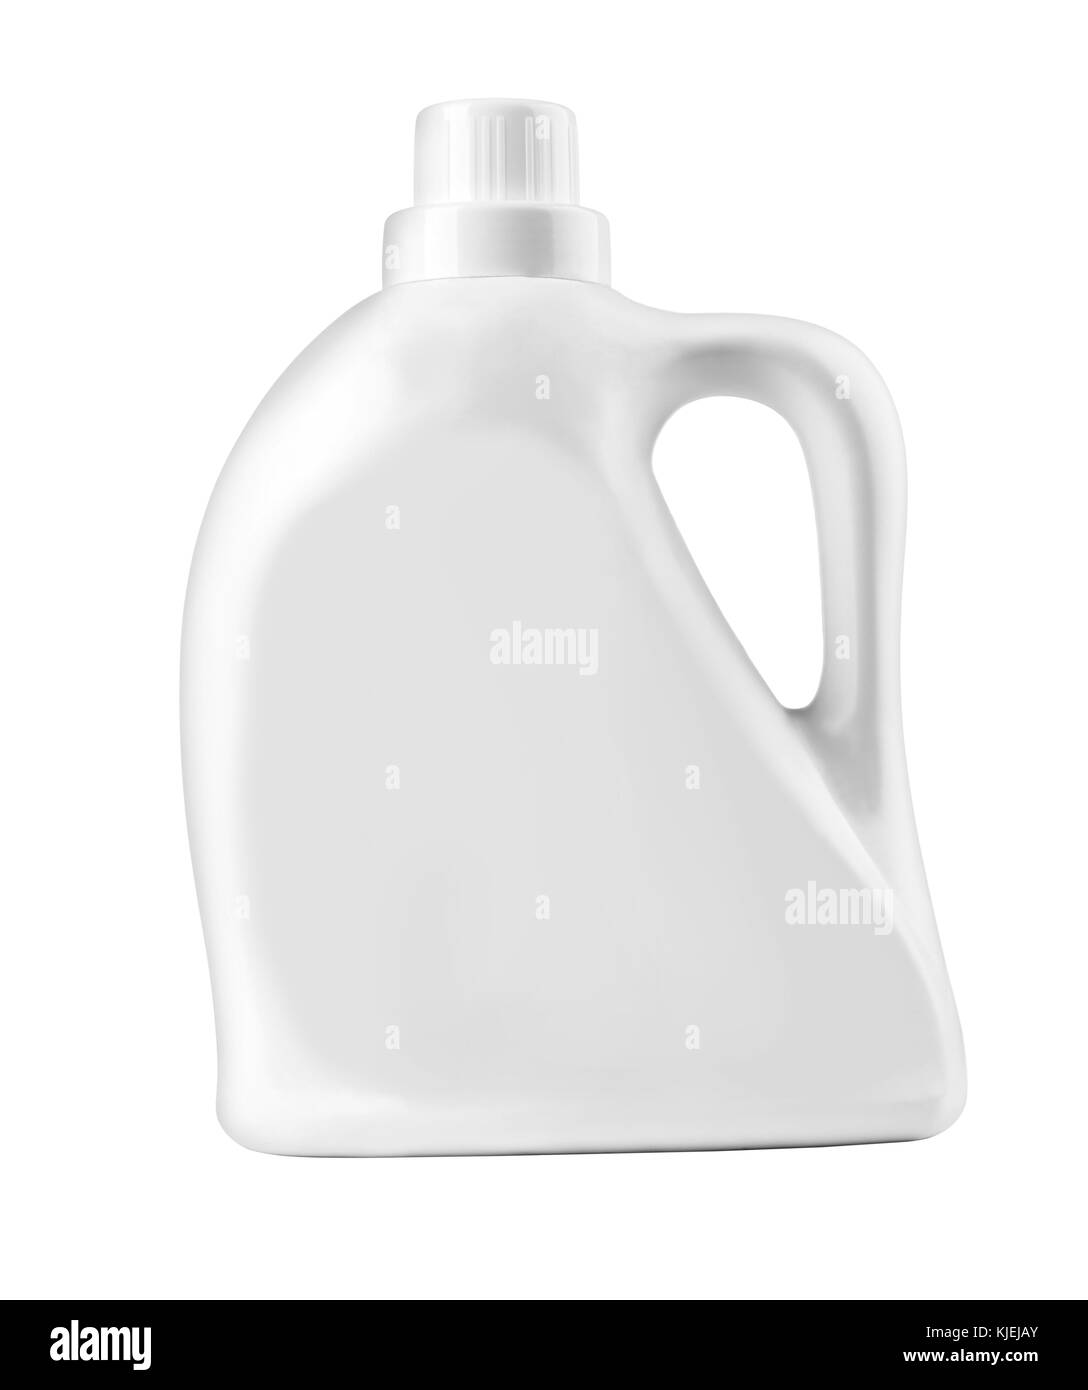 White Plastic Bottle For Liquid Laundry Detergent Cleaning Agent Bleach Or Fabric Softener